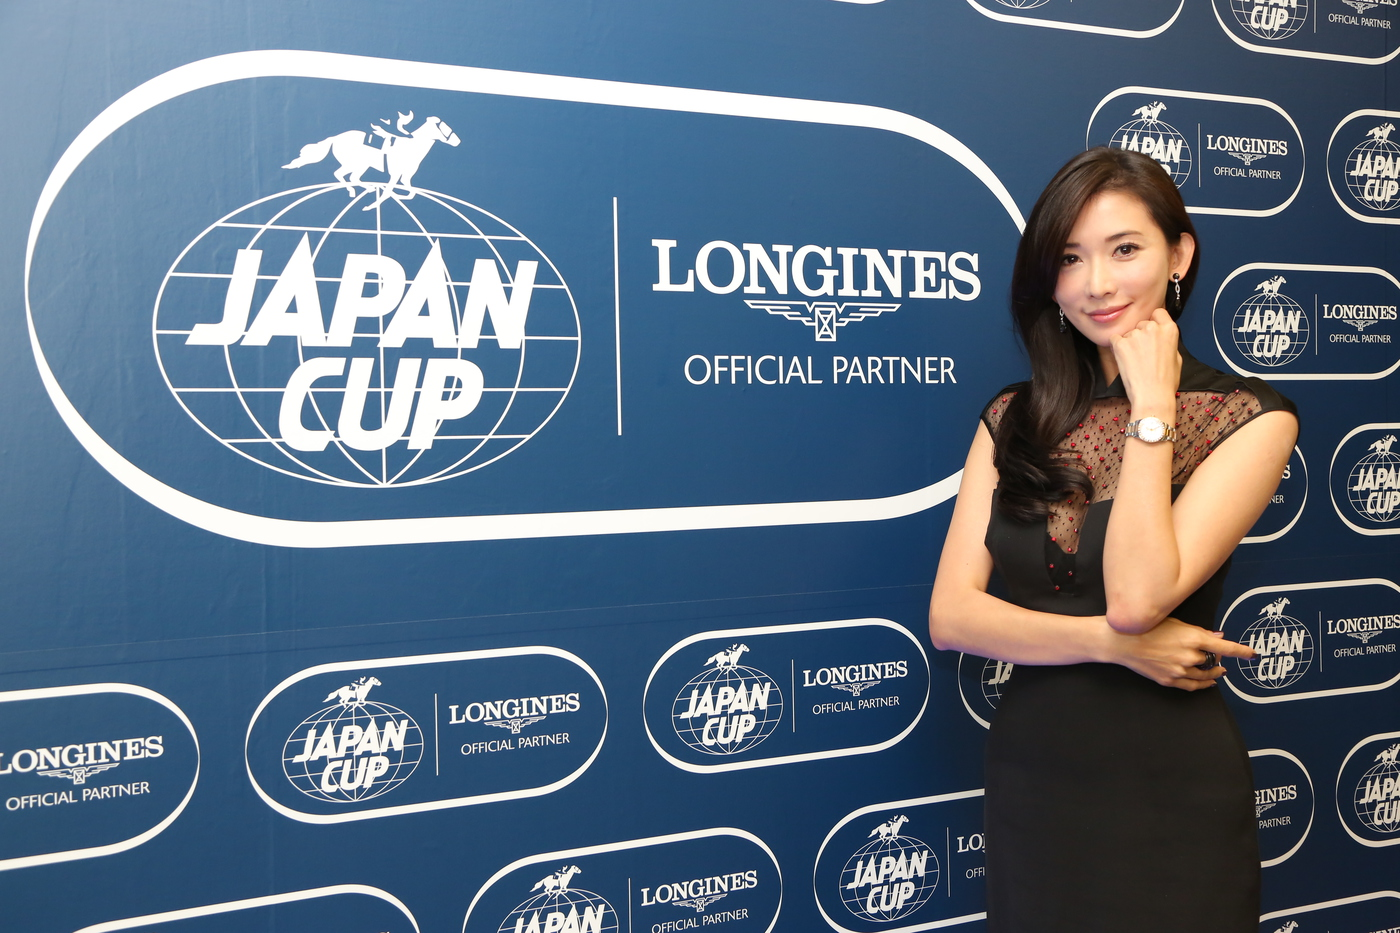 Longines Flat Racing Event: Christophe Soumillon on Epiphaneia wins the Japan Cup in association with Longines 4